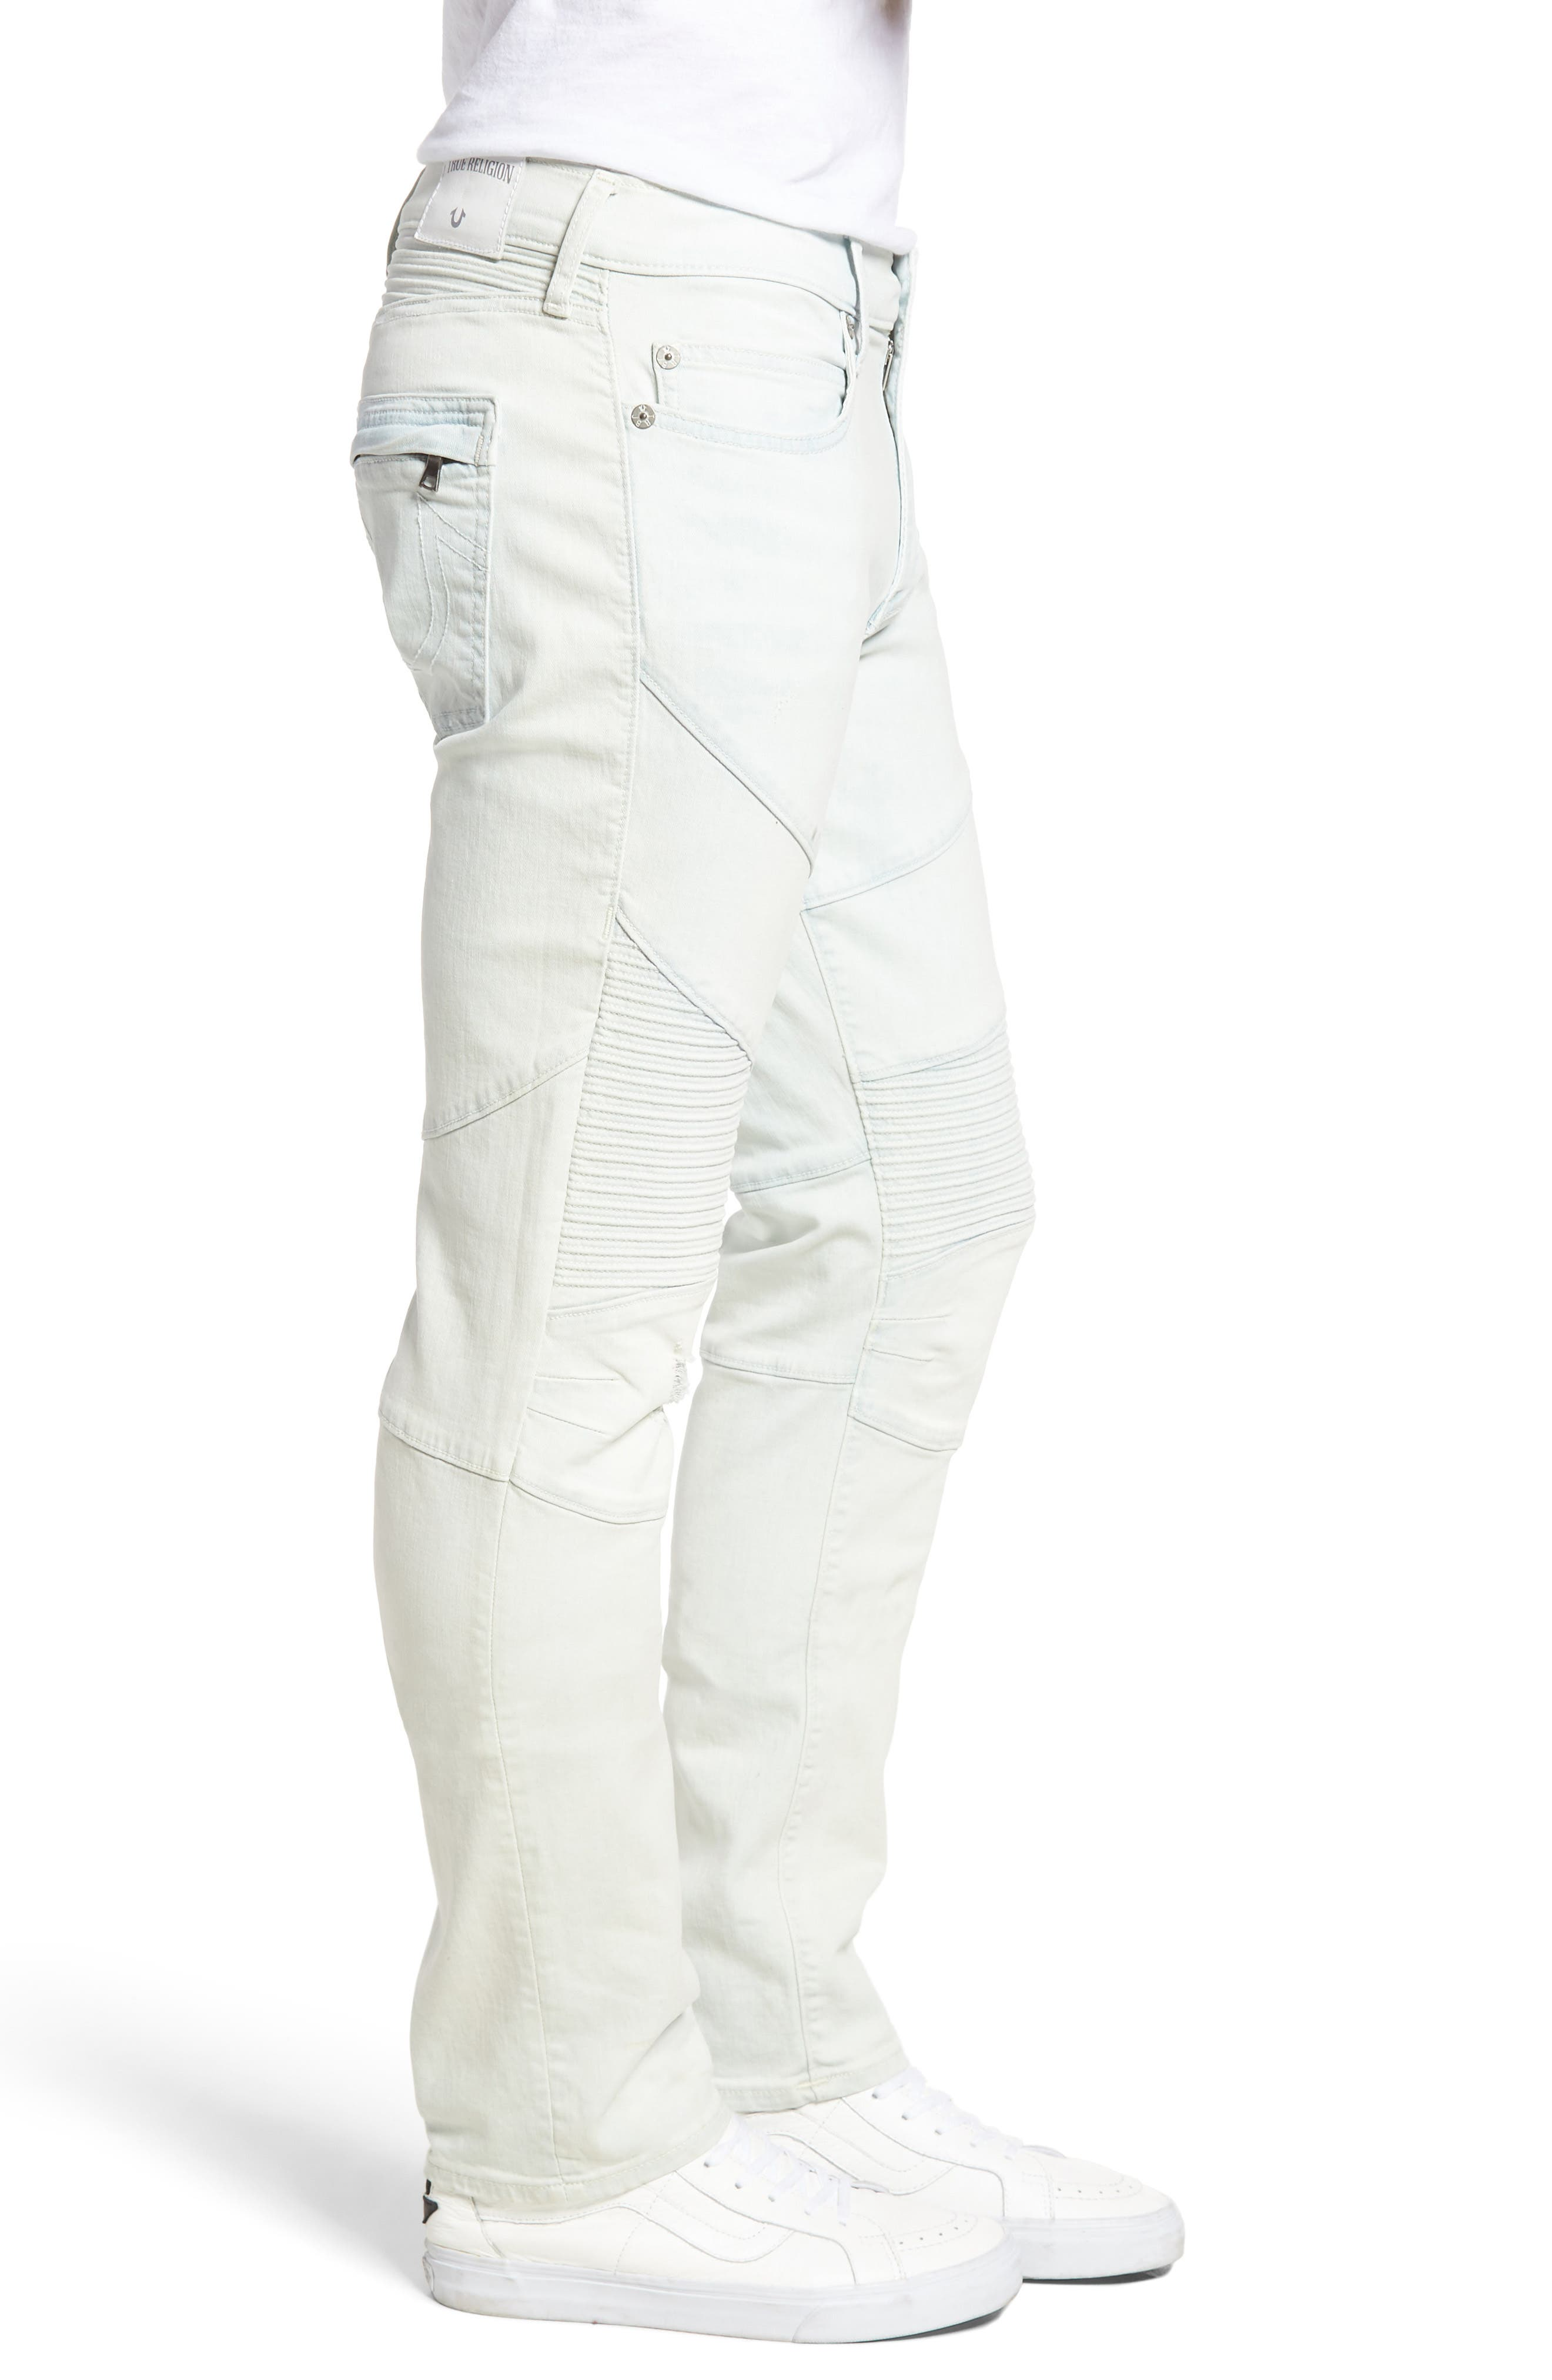 Rocco Skinny Fit Moto Jeans,                             Alternate thumbnail 3, color,                             Light Daze